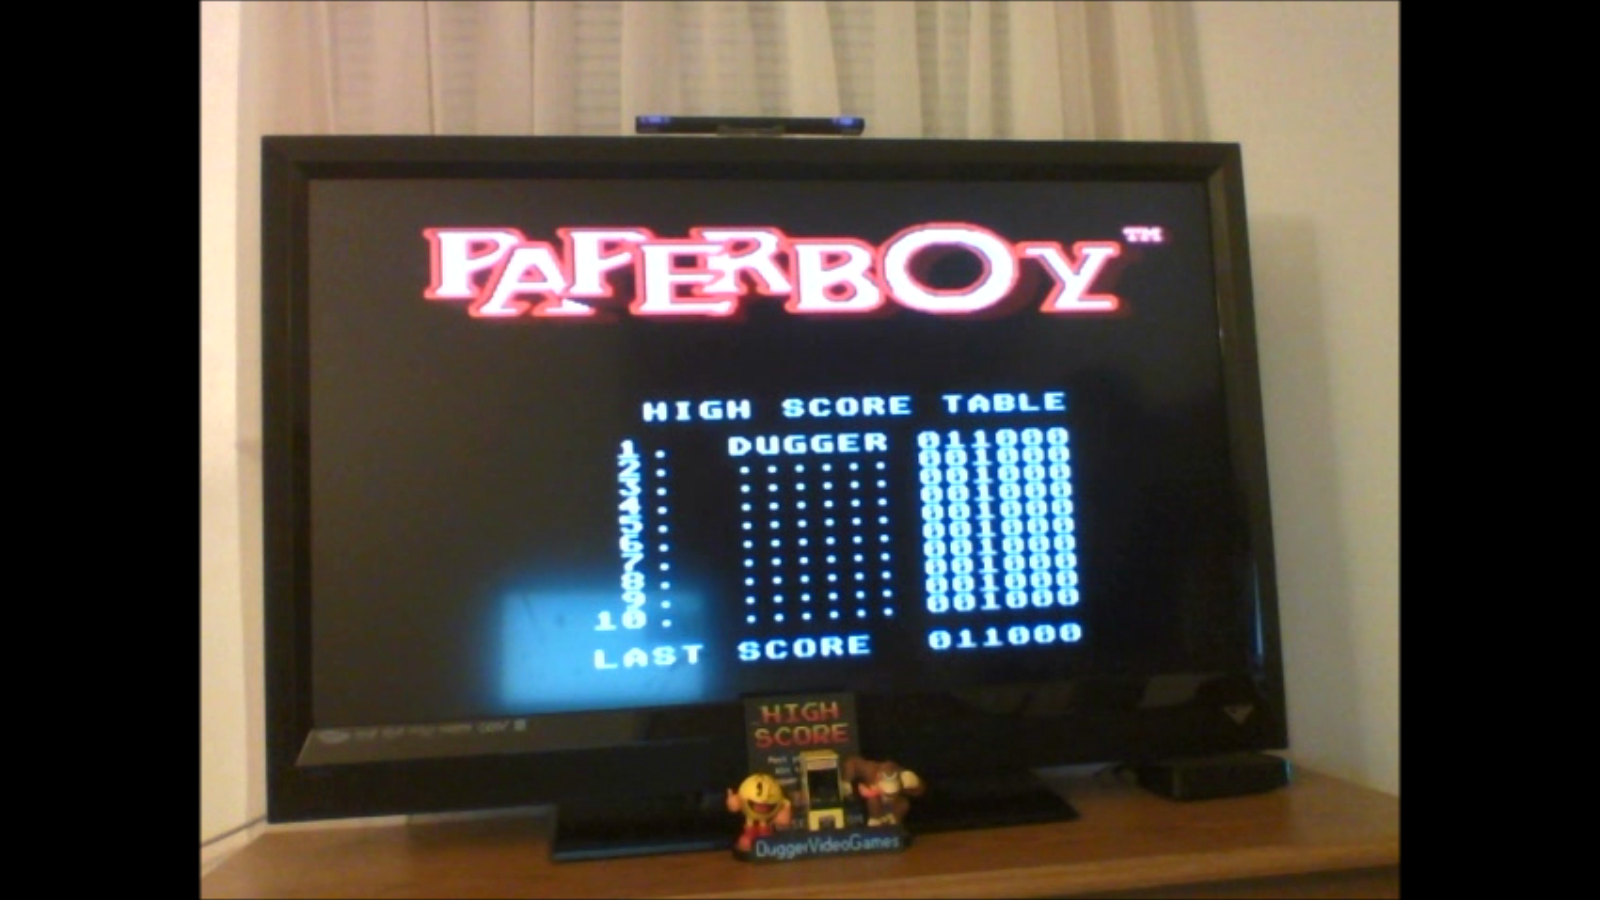 DuggerVideoGames: Paperboy [Easy Street] (Sega Master System Emulated) 11,000 points on 2017-03-01 03:05:46